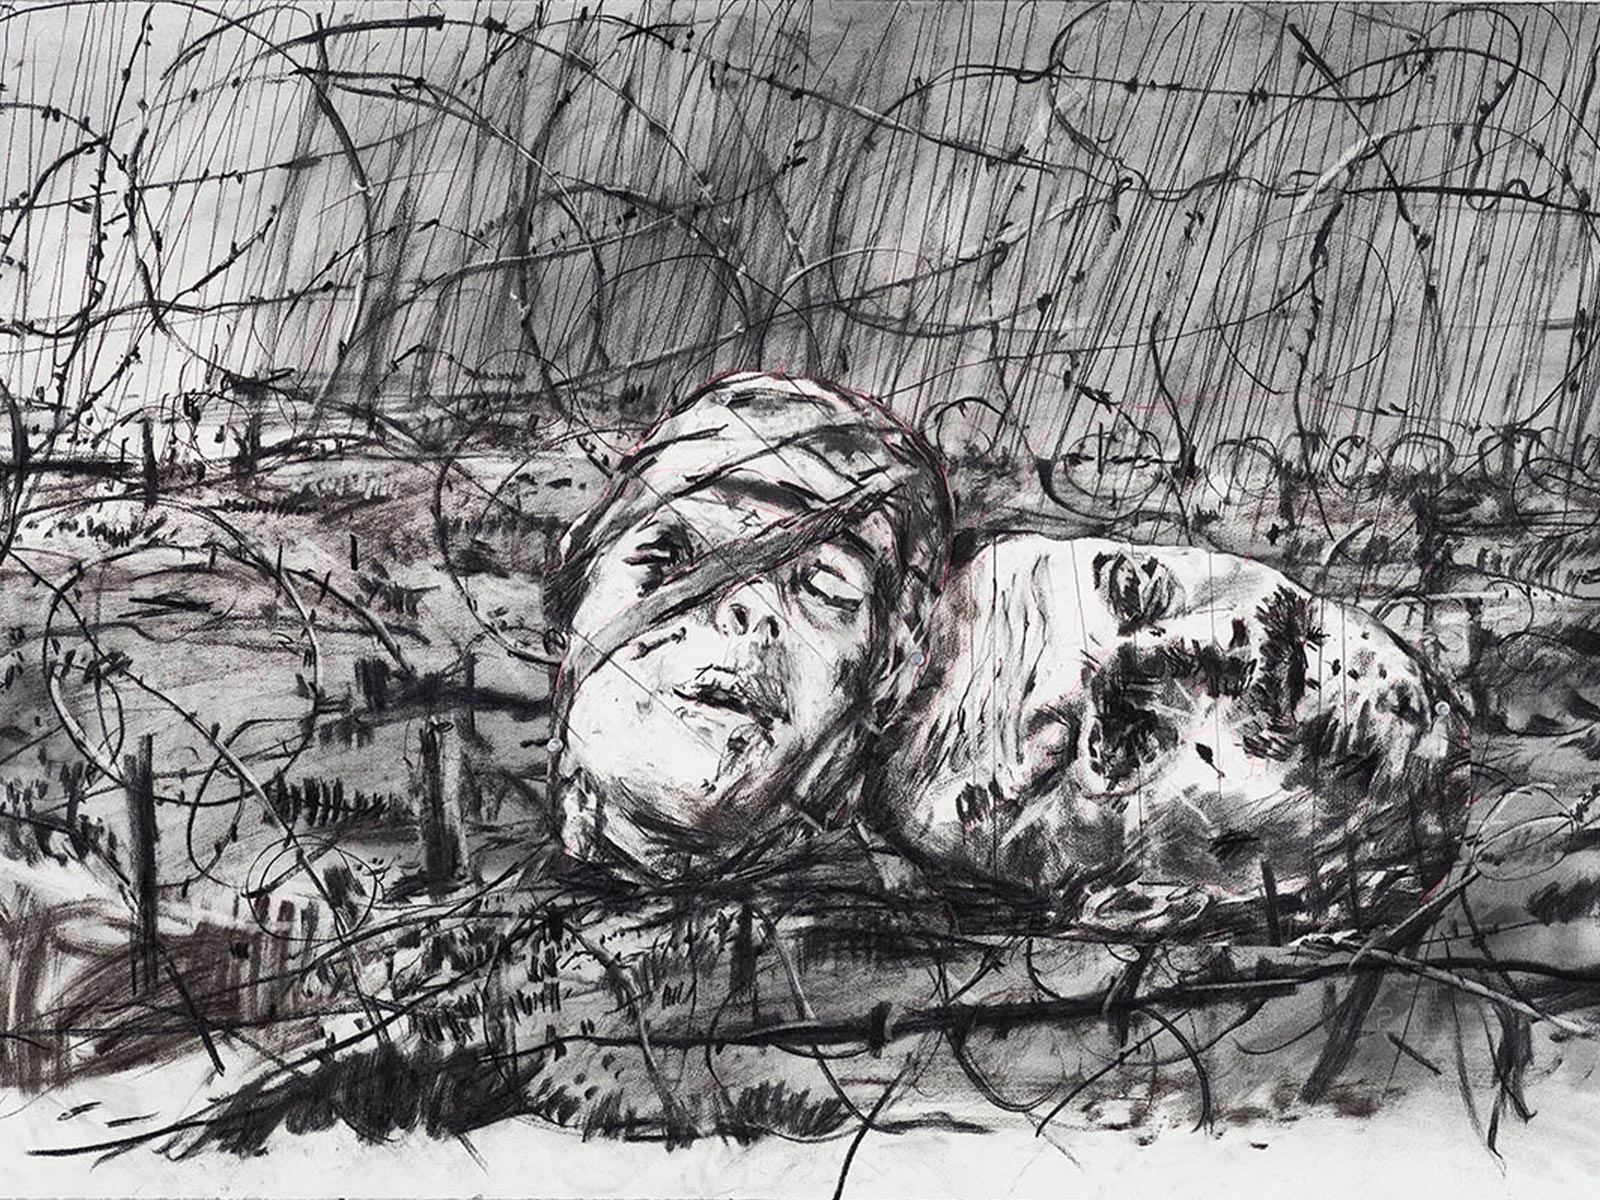 WK_17_178_Wozzeck_Drawing_Charcoal_9745.jpg